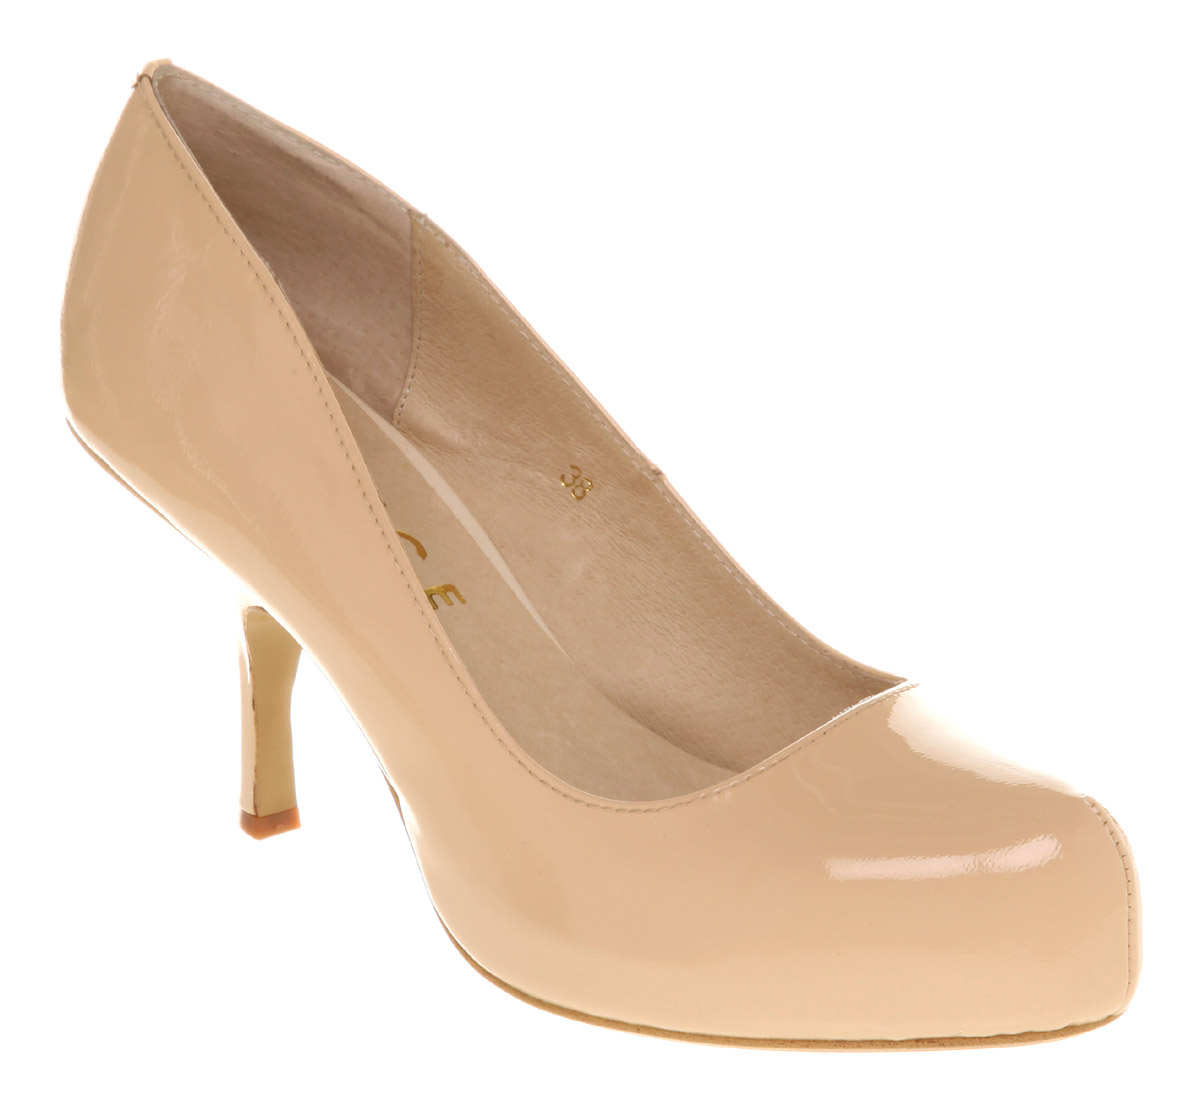 Free shipping and returns on all heels for women at lemkecollier.ga Find a great selection of women's shoes with medium, high and ultra-high heels from top brands including Christian Louboutin, Badgley Mischka, Steve Madden and more.